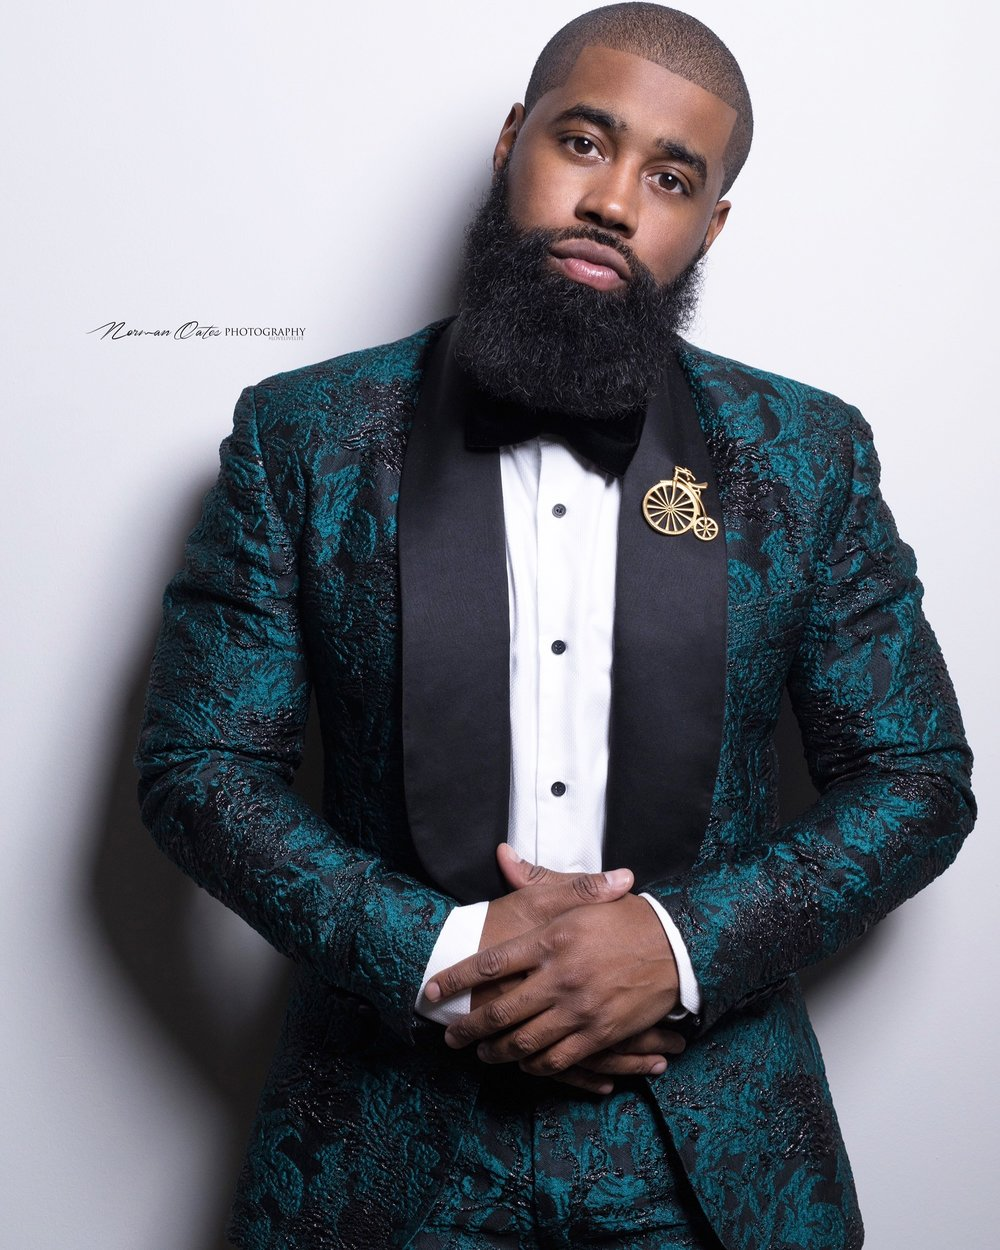 Darrick Leak, founder of D.Leak Bow-Ties. Photo: Norman Oates Photography